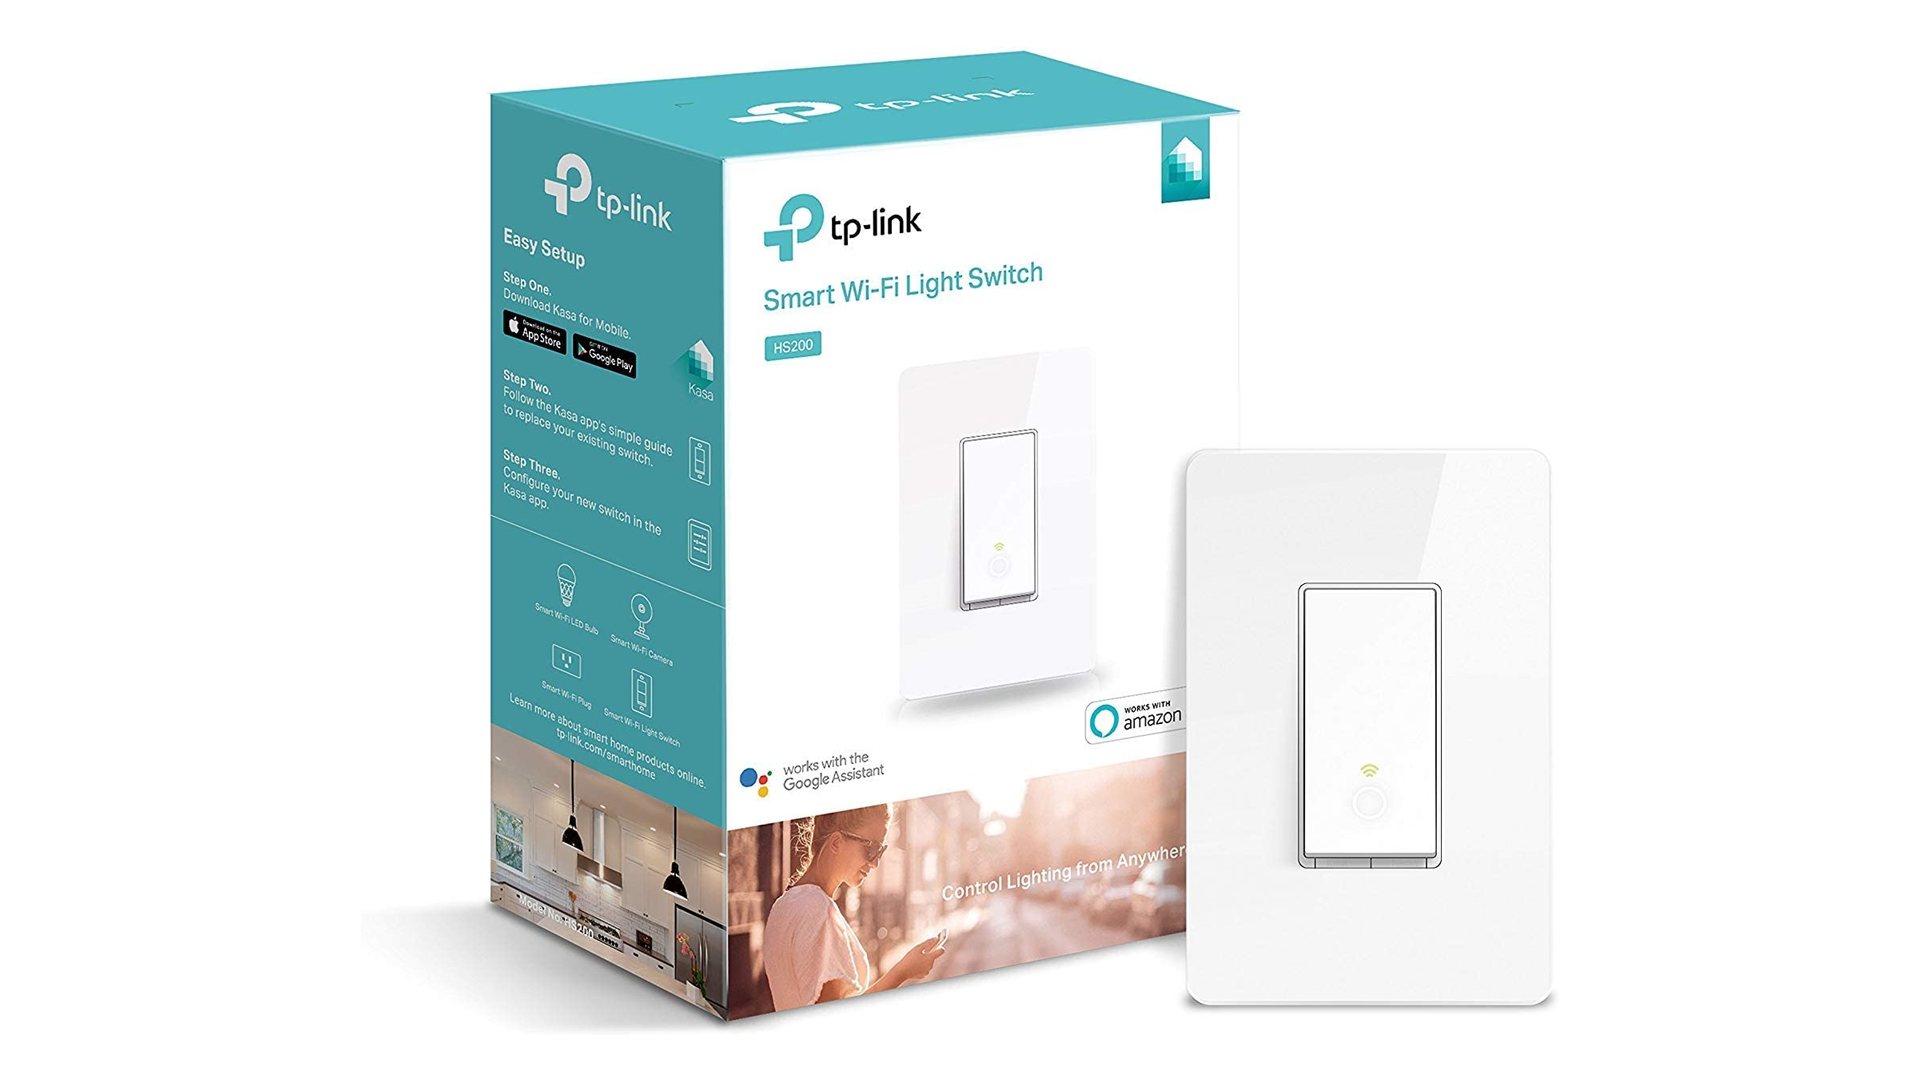 The TP Link Kasa smart switch